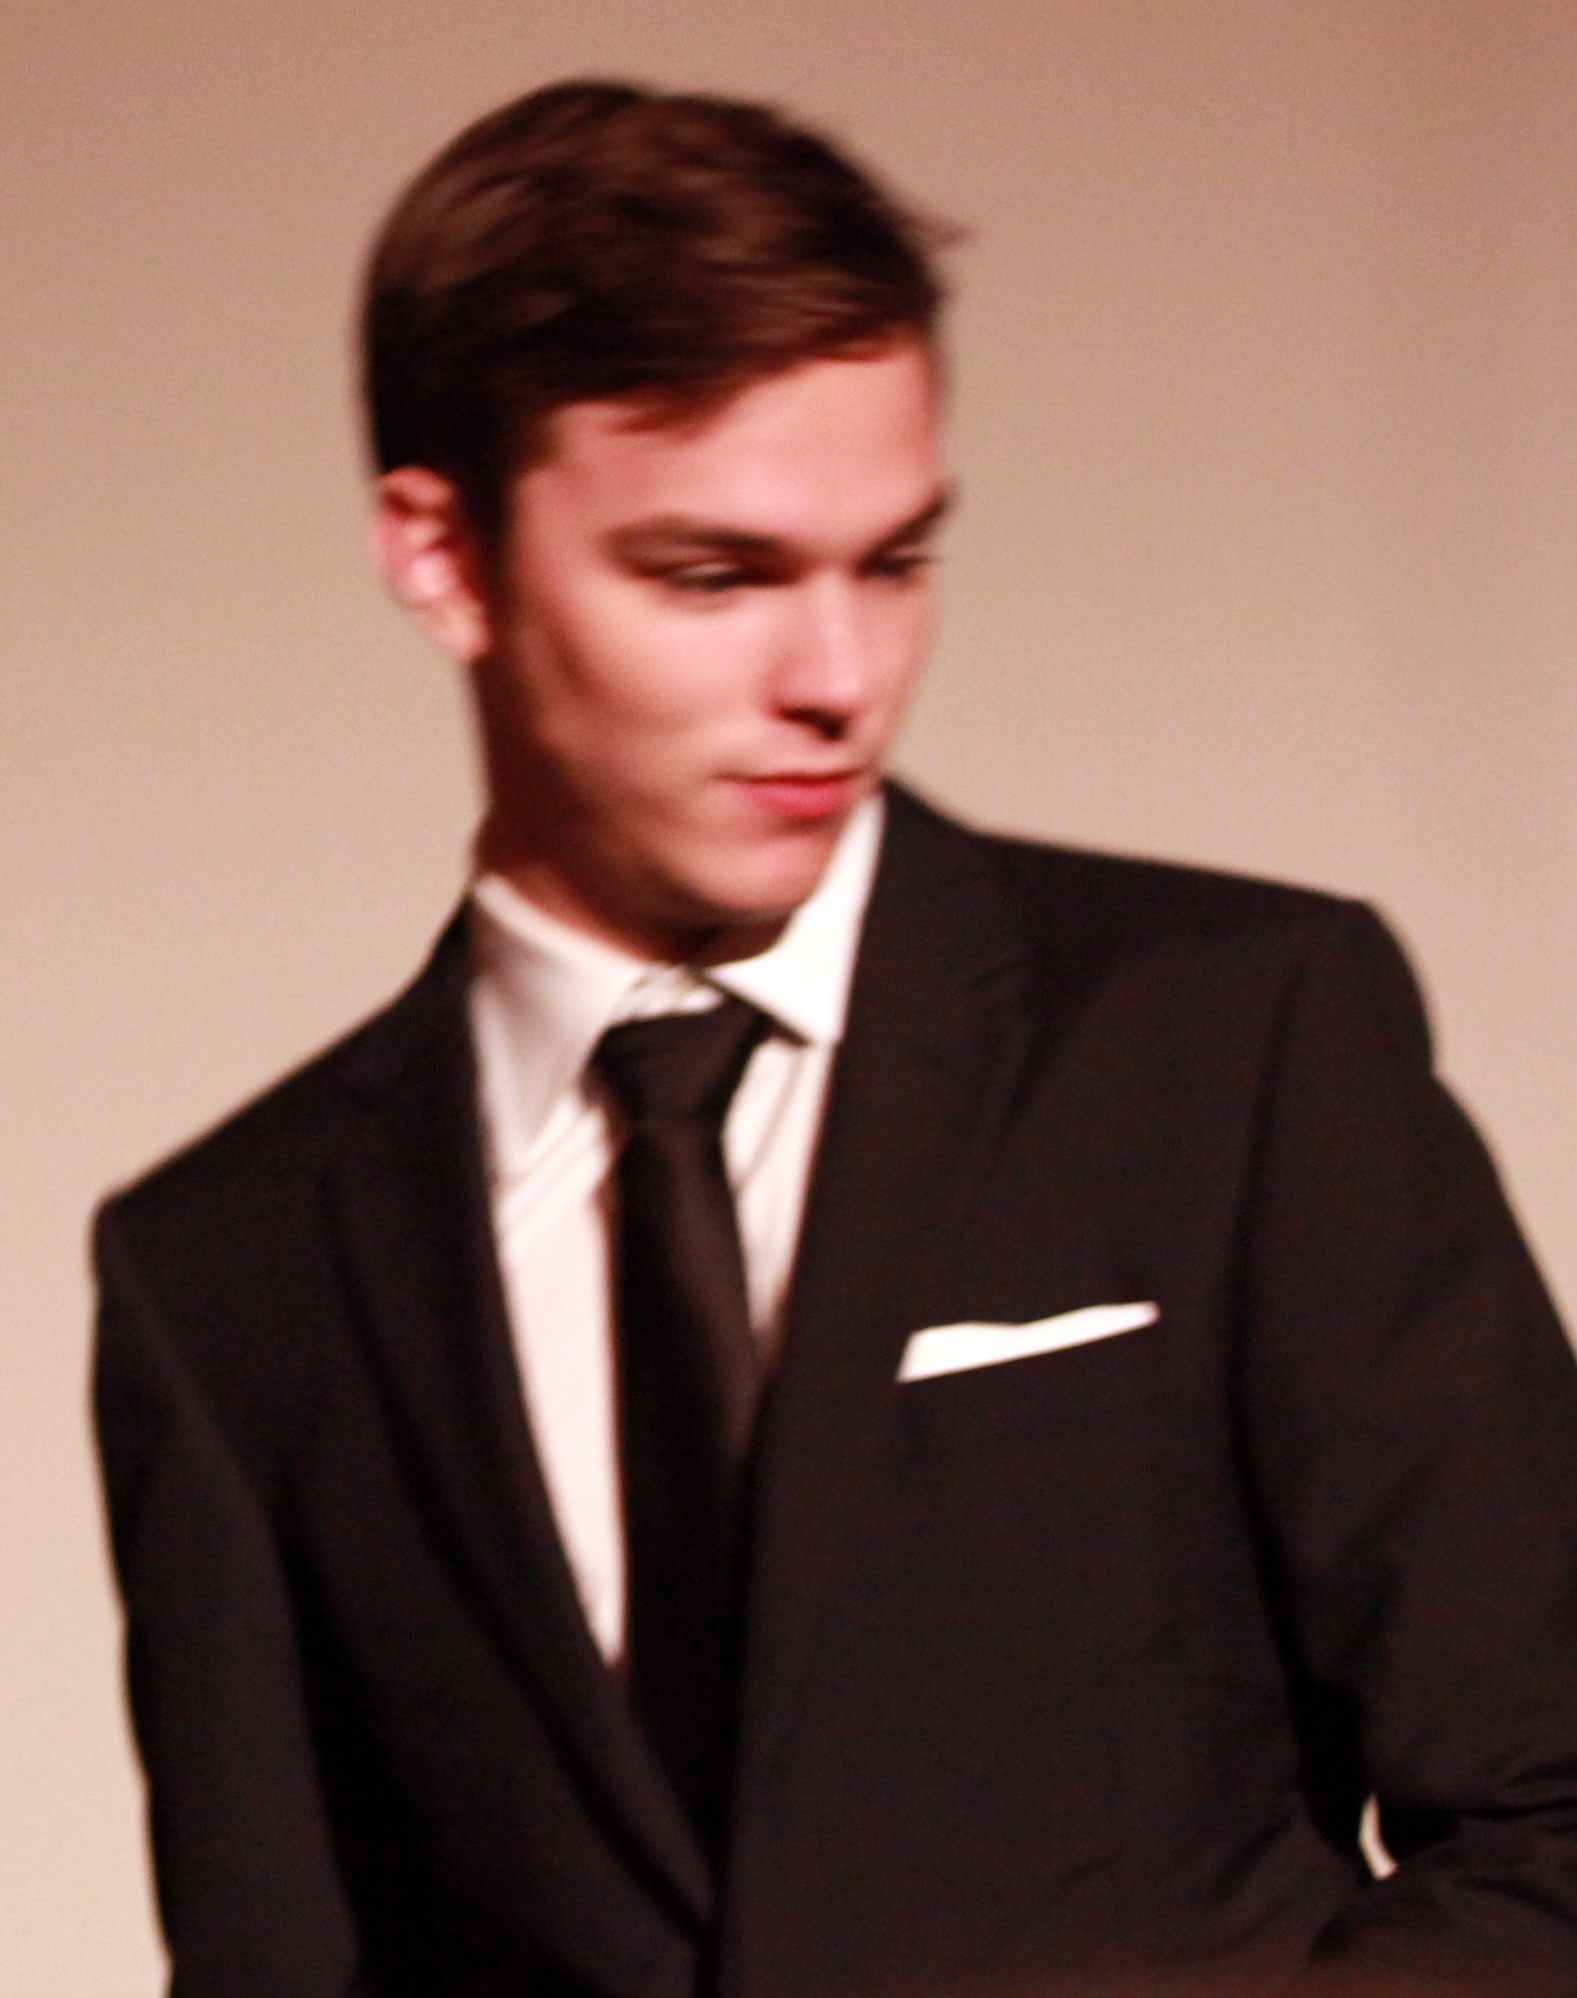 Description nicholas hoult 2010